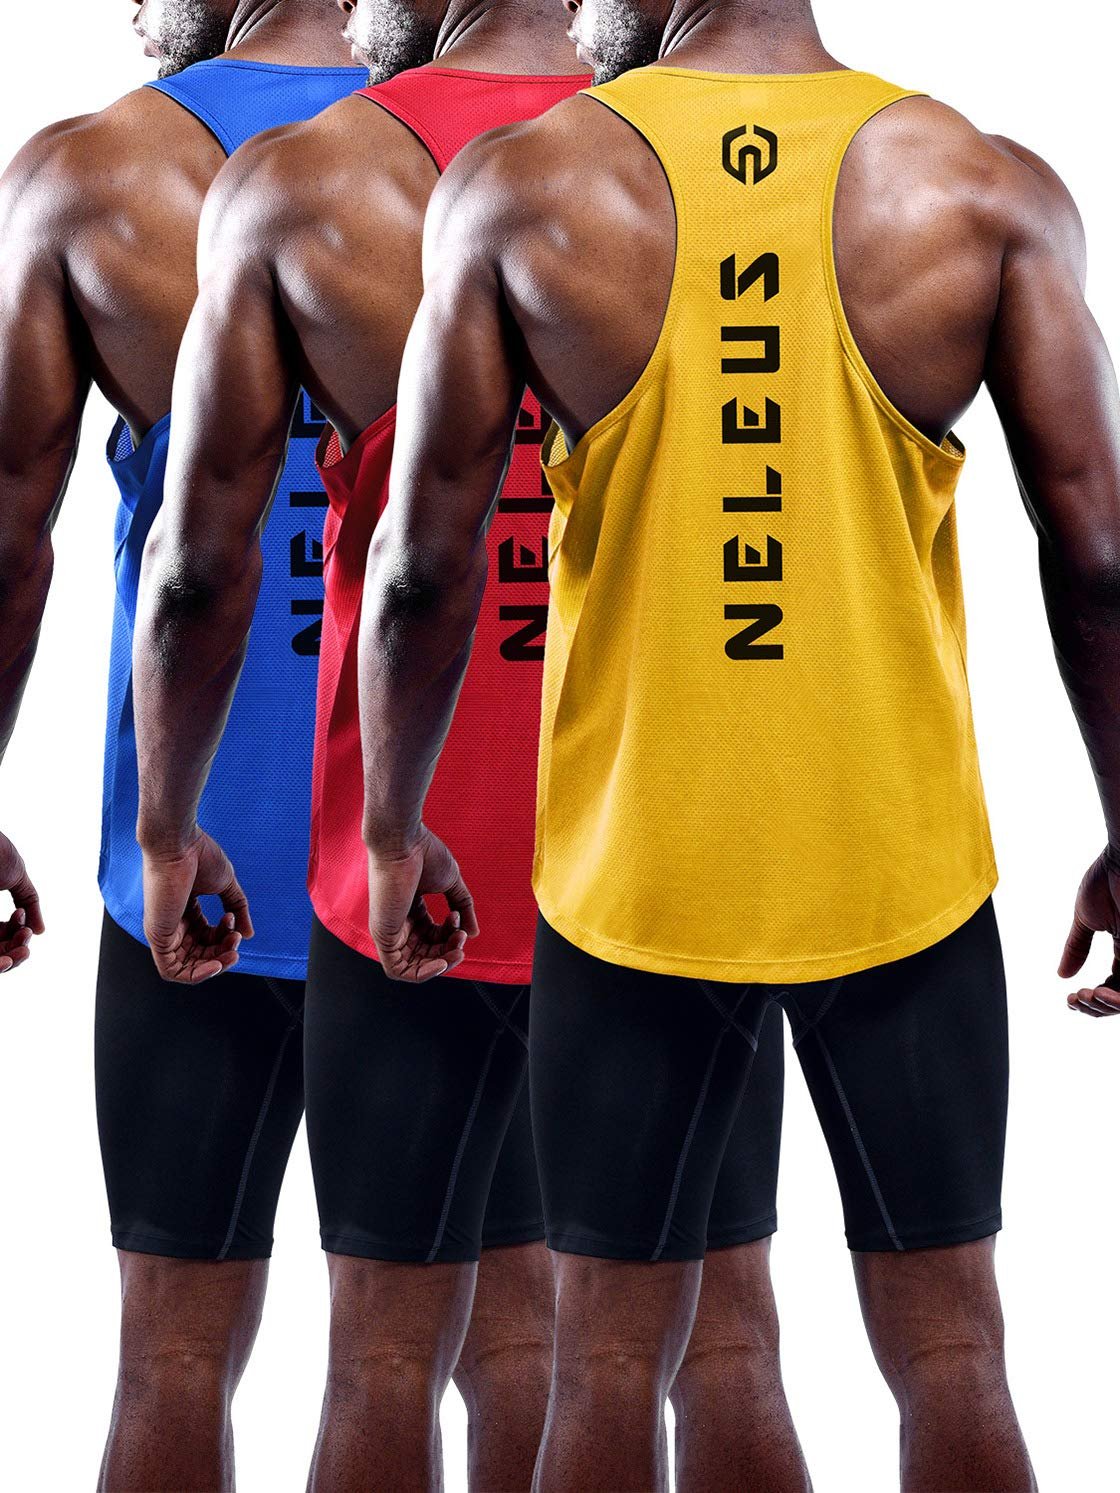 Neleus Men's 3 Pack Dry Fit Athletic Muscle Tank,5031,Blue,Red,Yellow,XS,EU S by Neleus